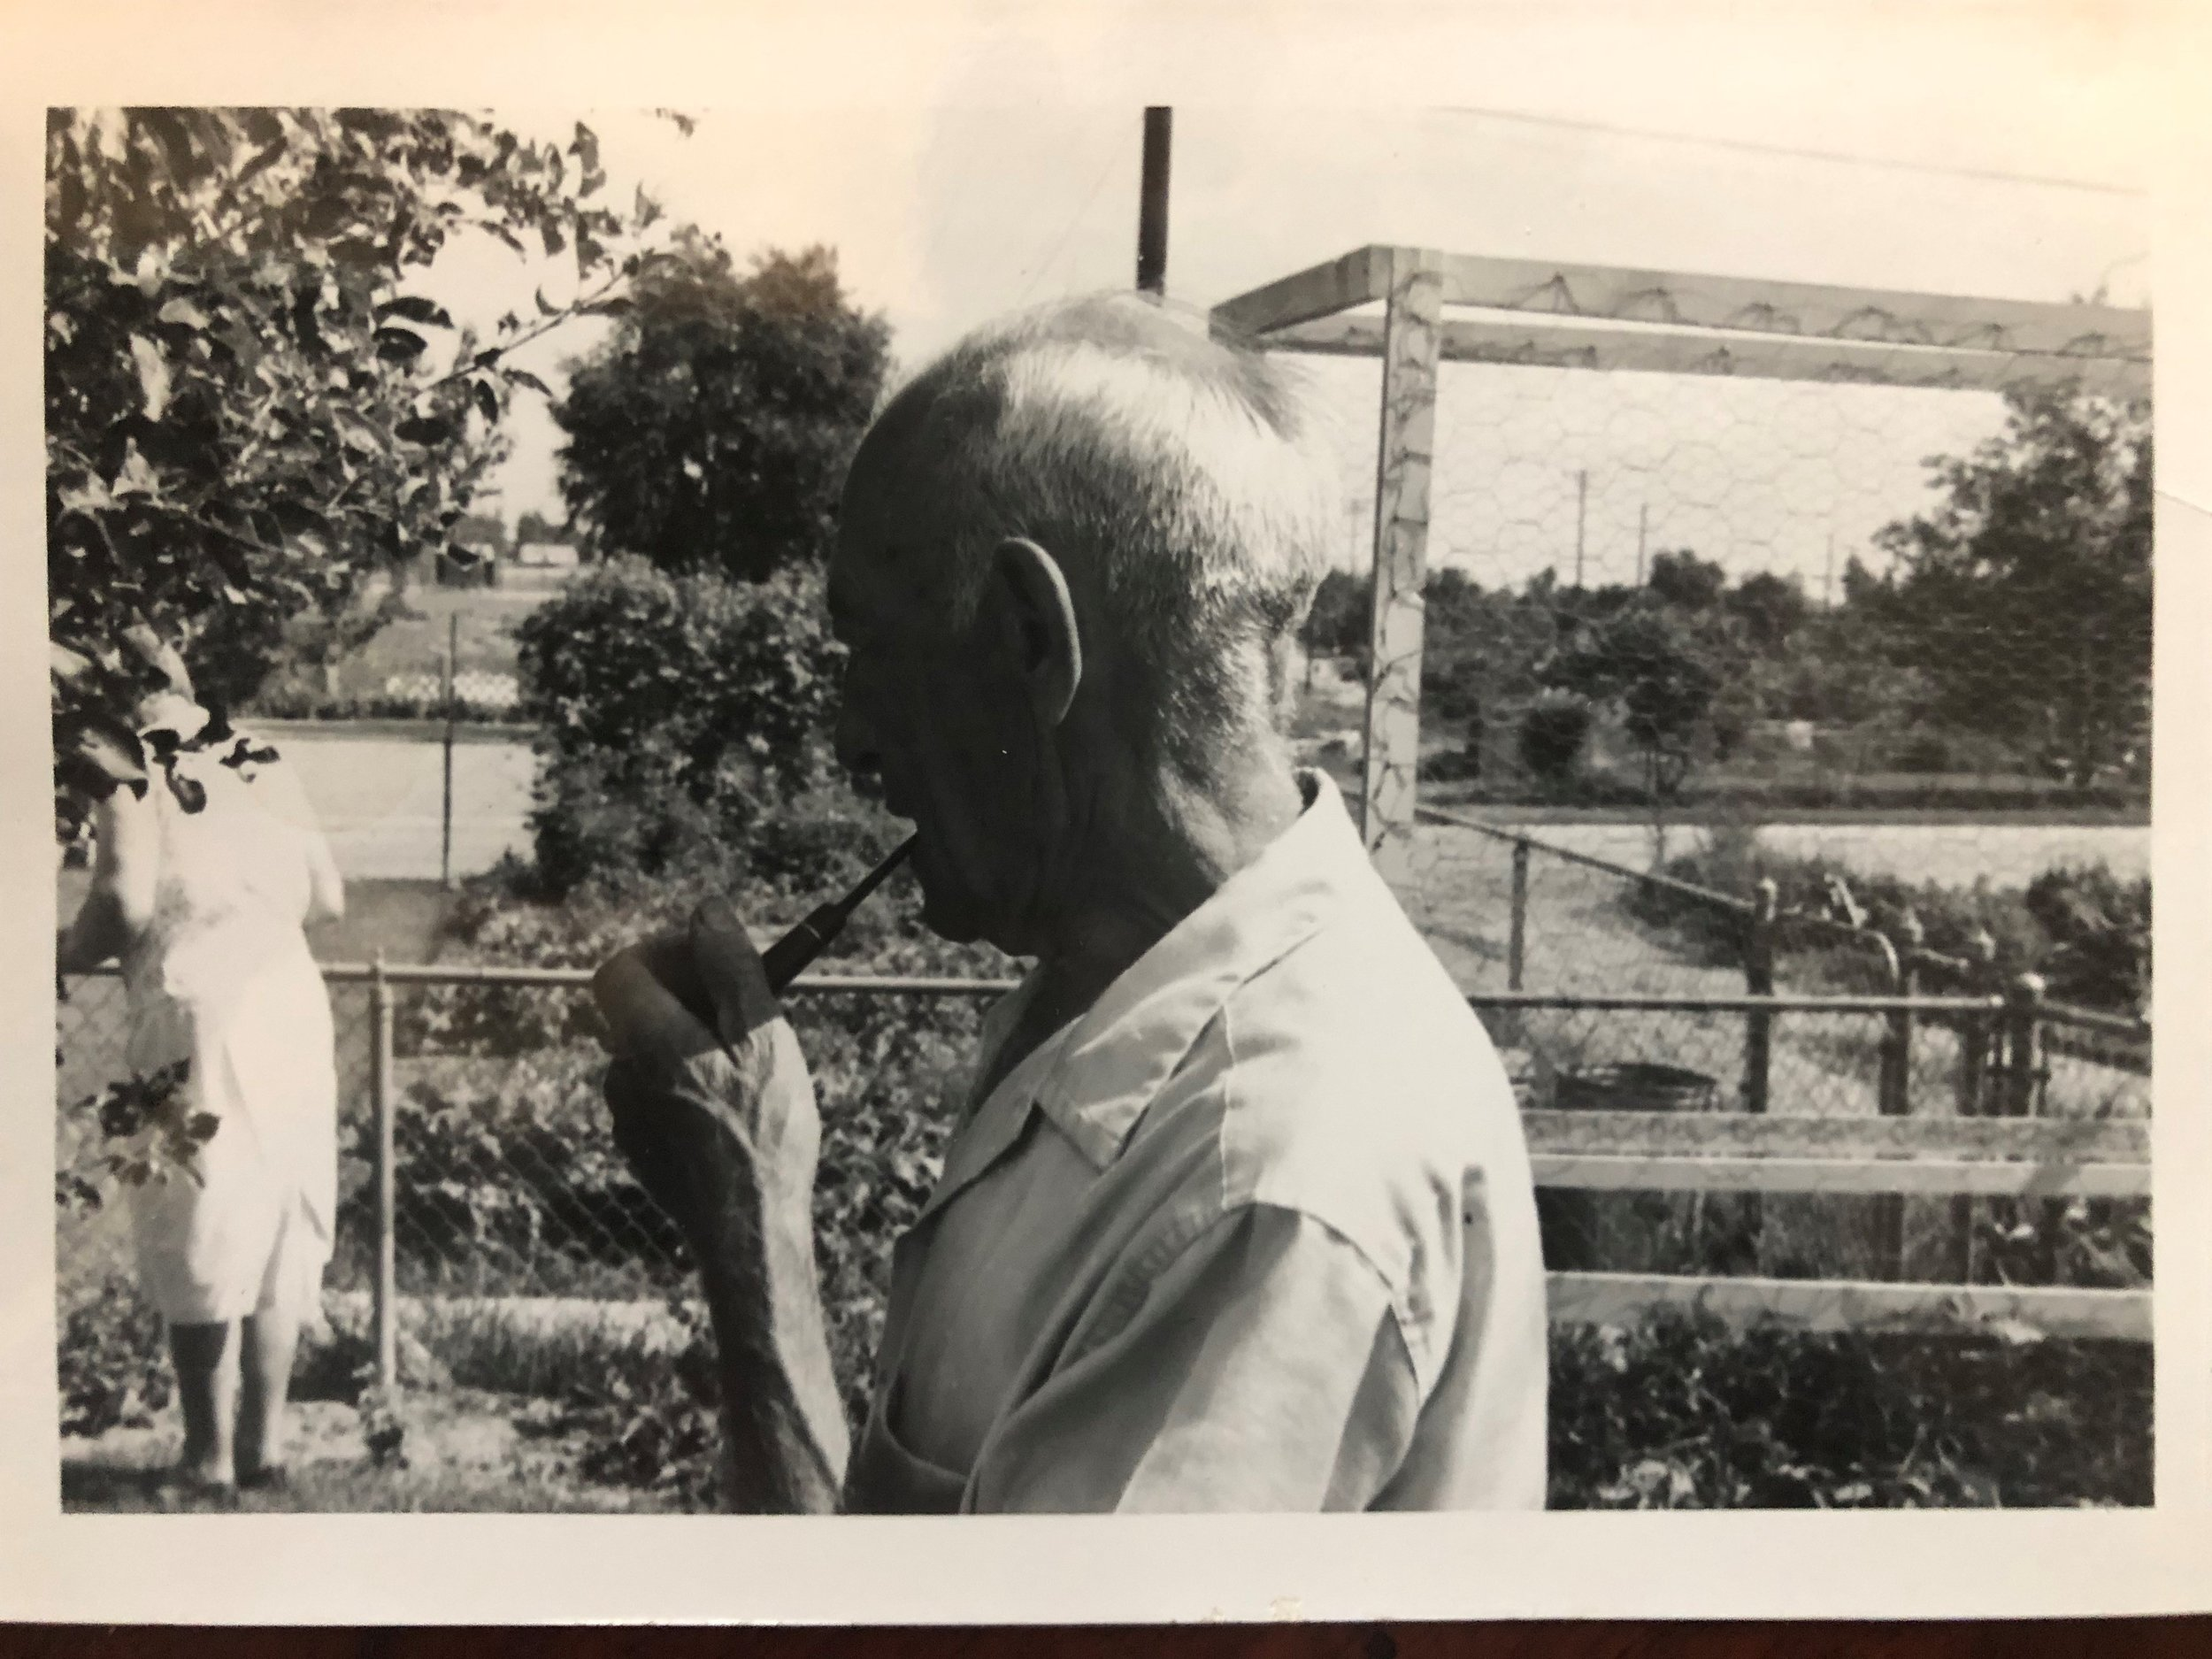 My grandpa out in his garden.